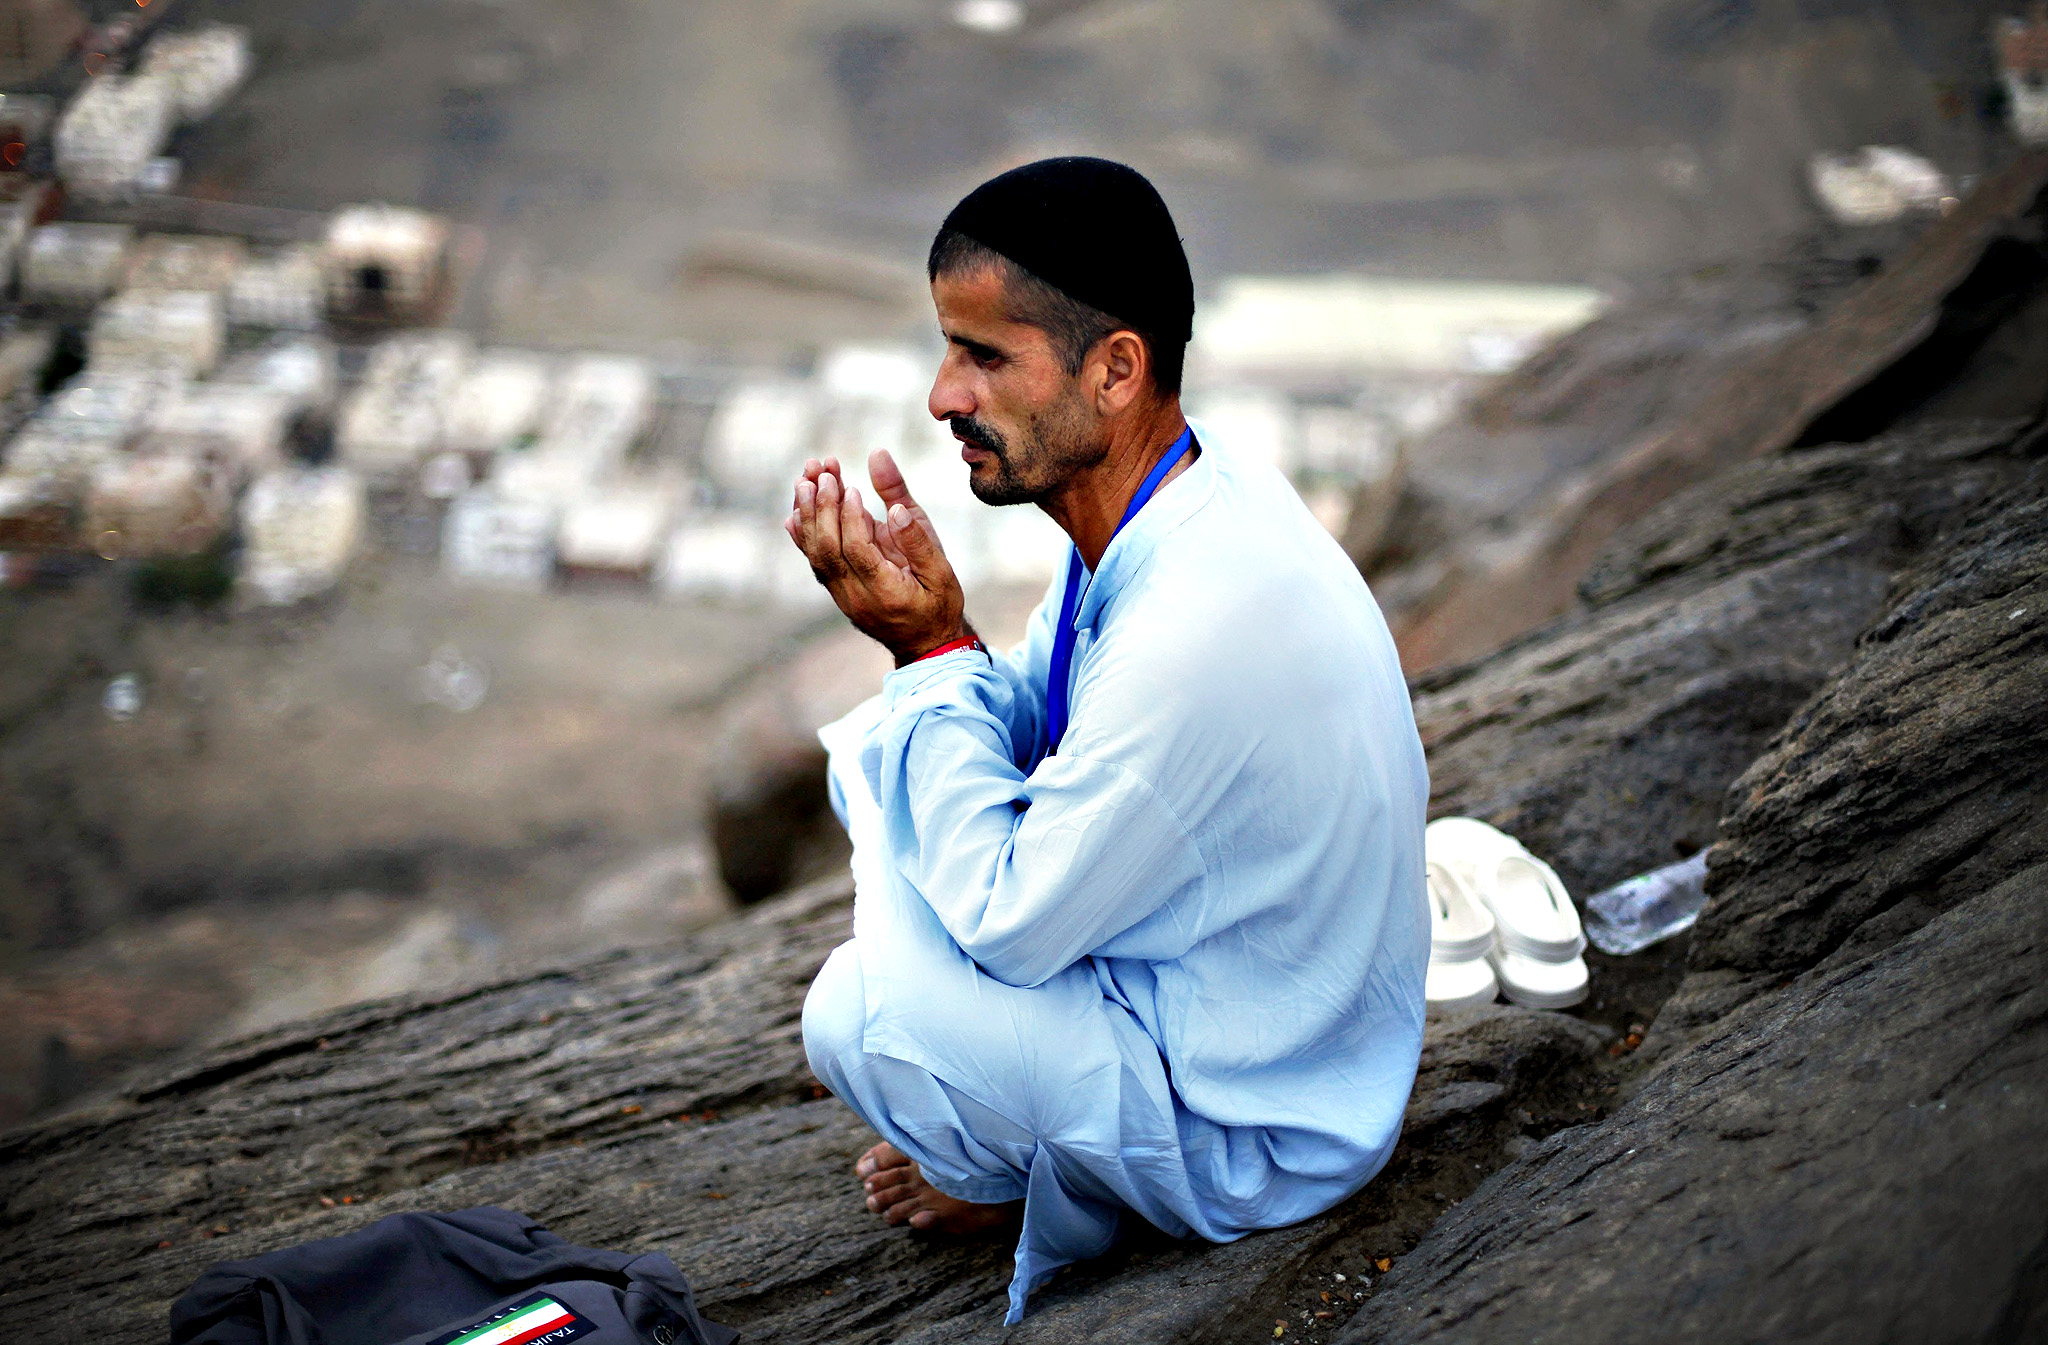 A Muslim pilgrim prays at Mount Al-Noor ahead of the annual haj pilgrimage in Mecca October 10, 2013. Mount Al-Noor houses Ghar-E-Hira or Hira cave, where Prophet Mohammad is said to have spent a great deal of time in the cave meditating and it is believed that he had received his first revelation inside this cave.